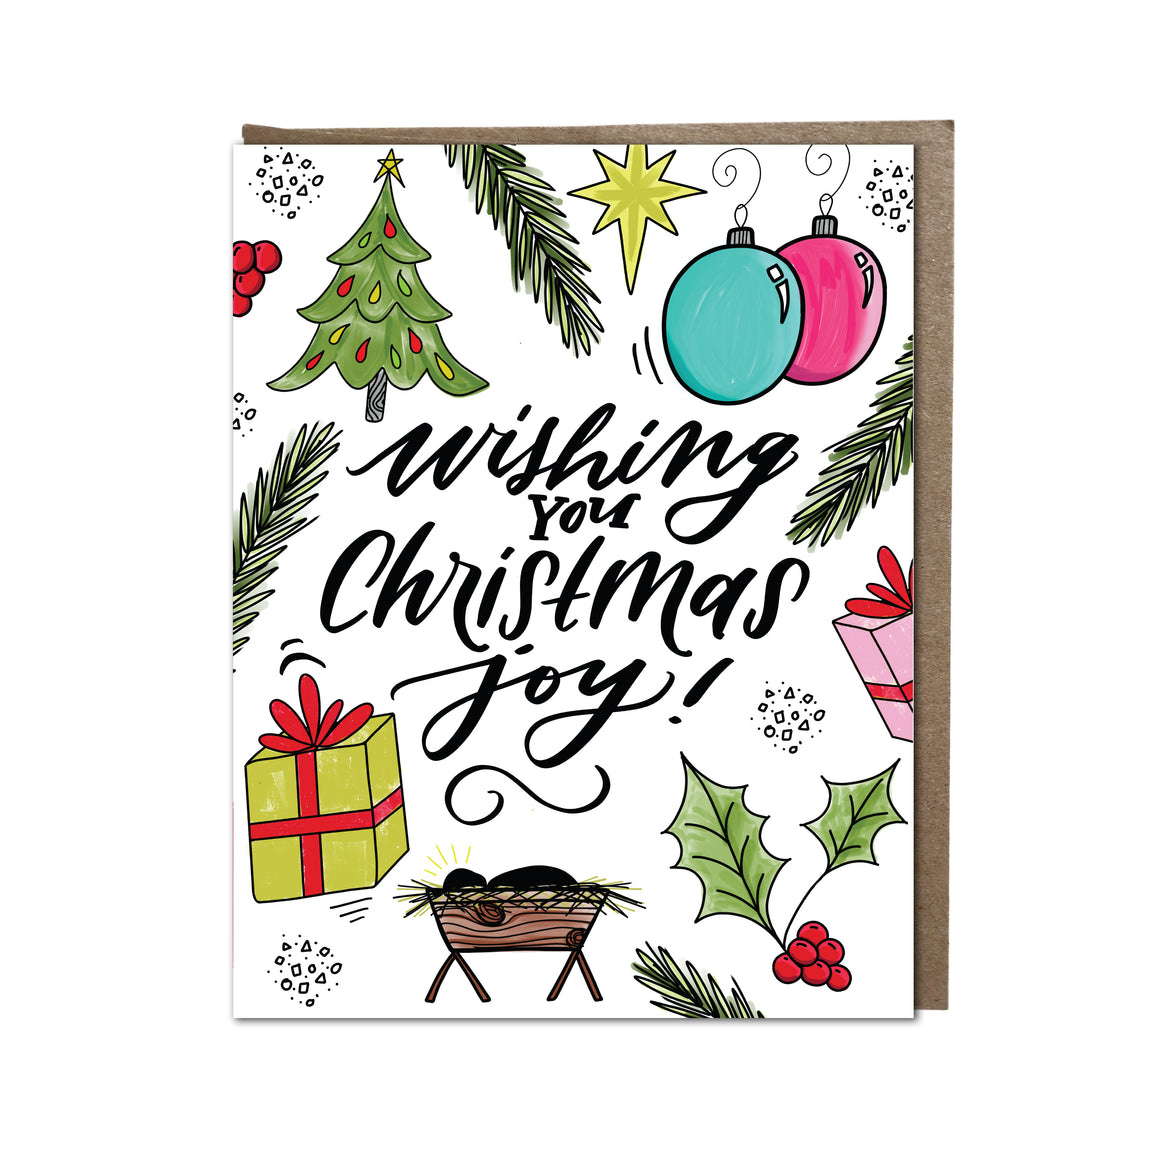 """Wishing You Christmas Joy"" card"